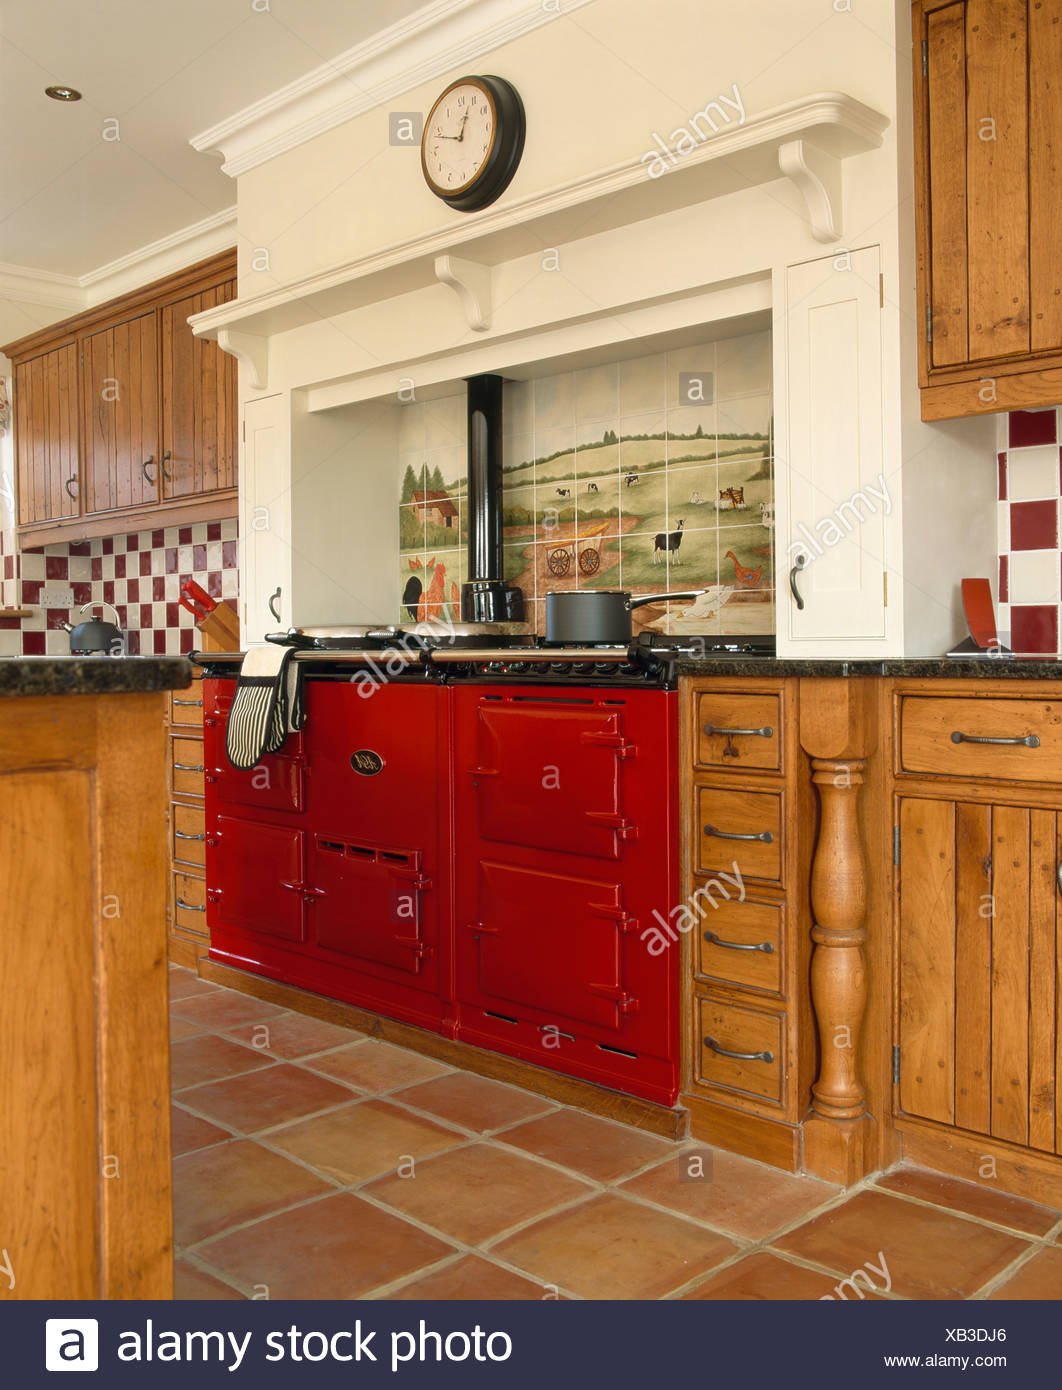 Red Aga Oven High Resolution Stock Photography And Images Alamy